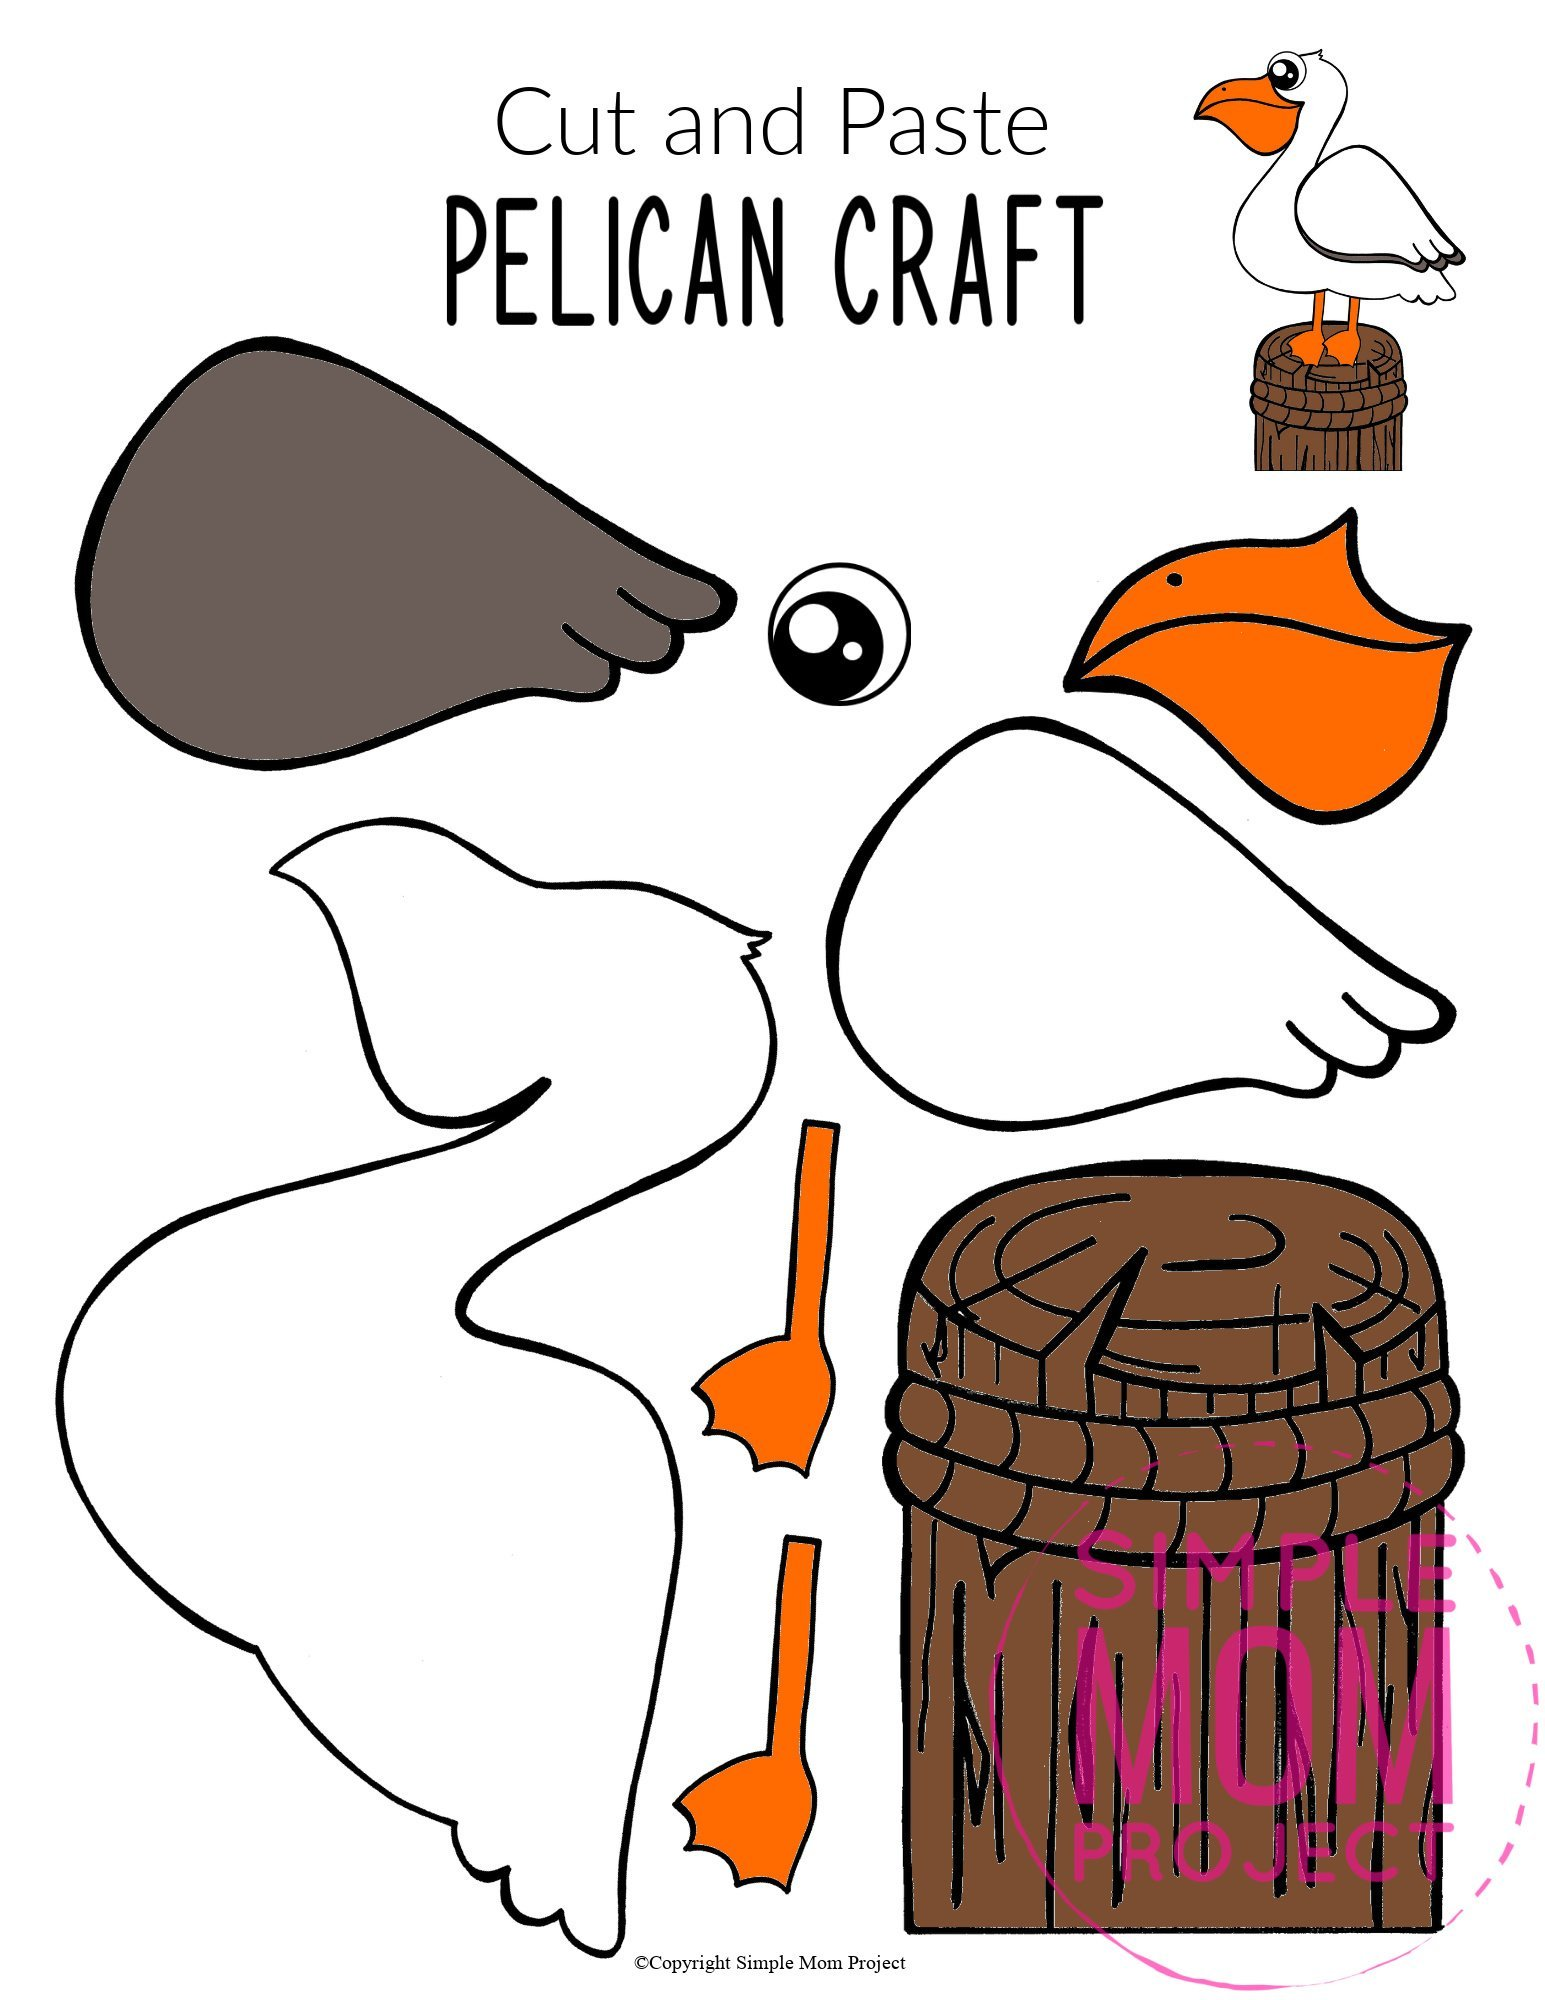 Free Printable Ocean Animal Pelican Crafts for kids of all ages, including preschoolers and toddlers